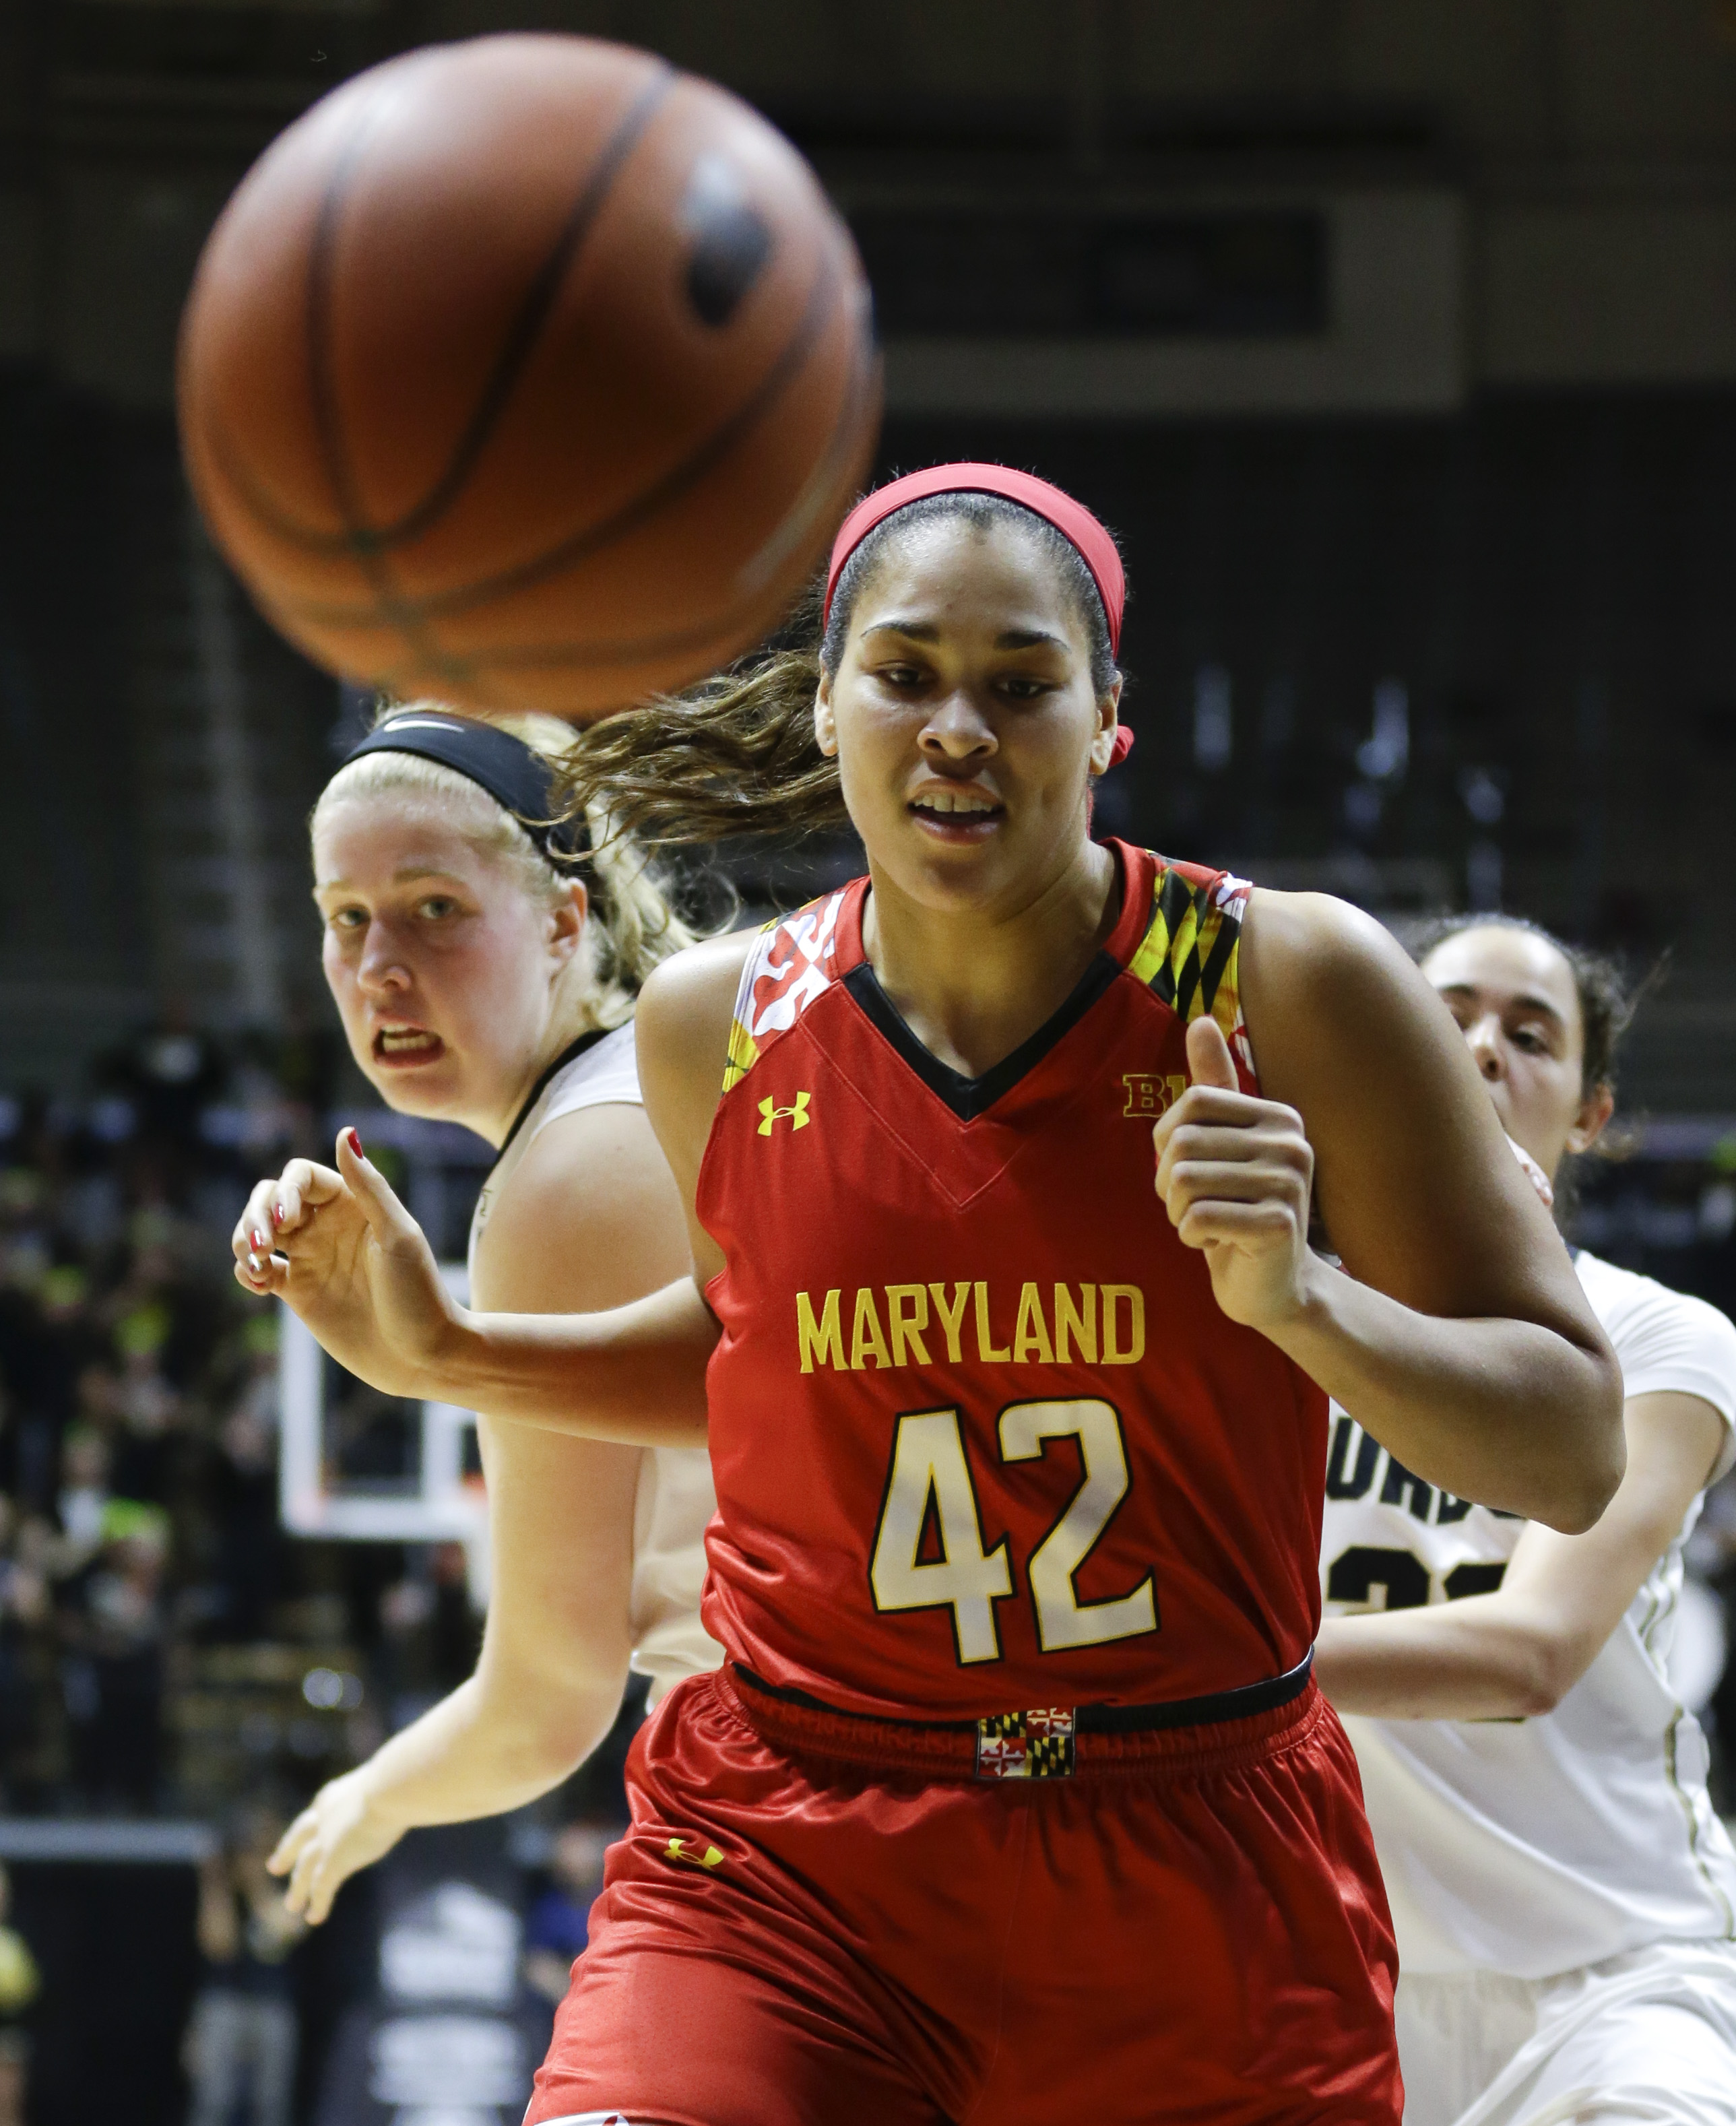 Maryland center Brionna Jones (42) and Purdue guard Bridget Perry (13) watch as the ball is knocked out of bounds during the first half of an NCAA college basketball game in West Lafayette, Ind., Tuesday, Feb. 2, 2016. (AP Photo/Michael Conroy)